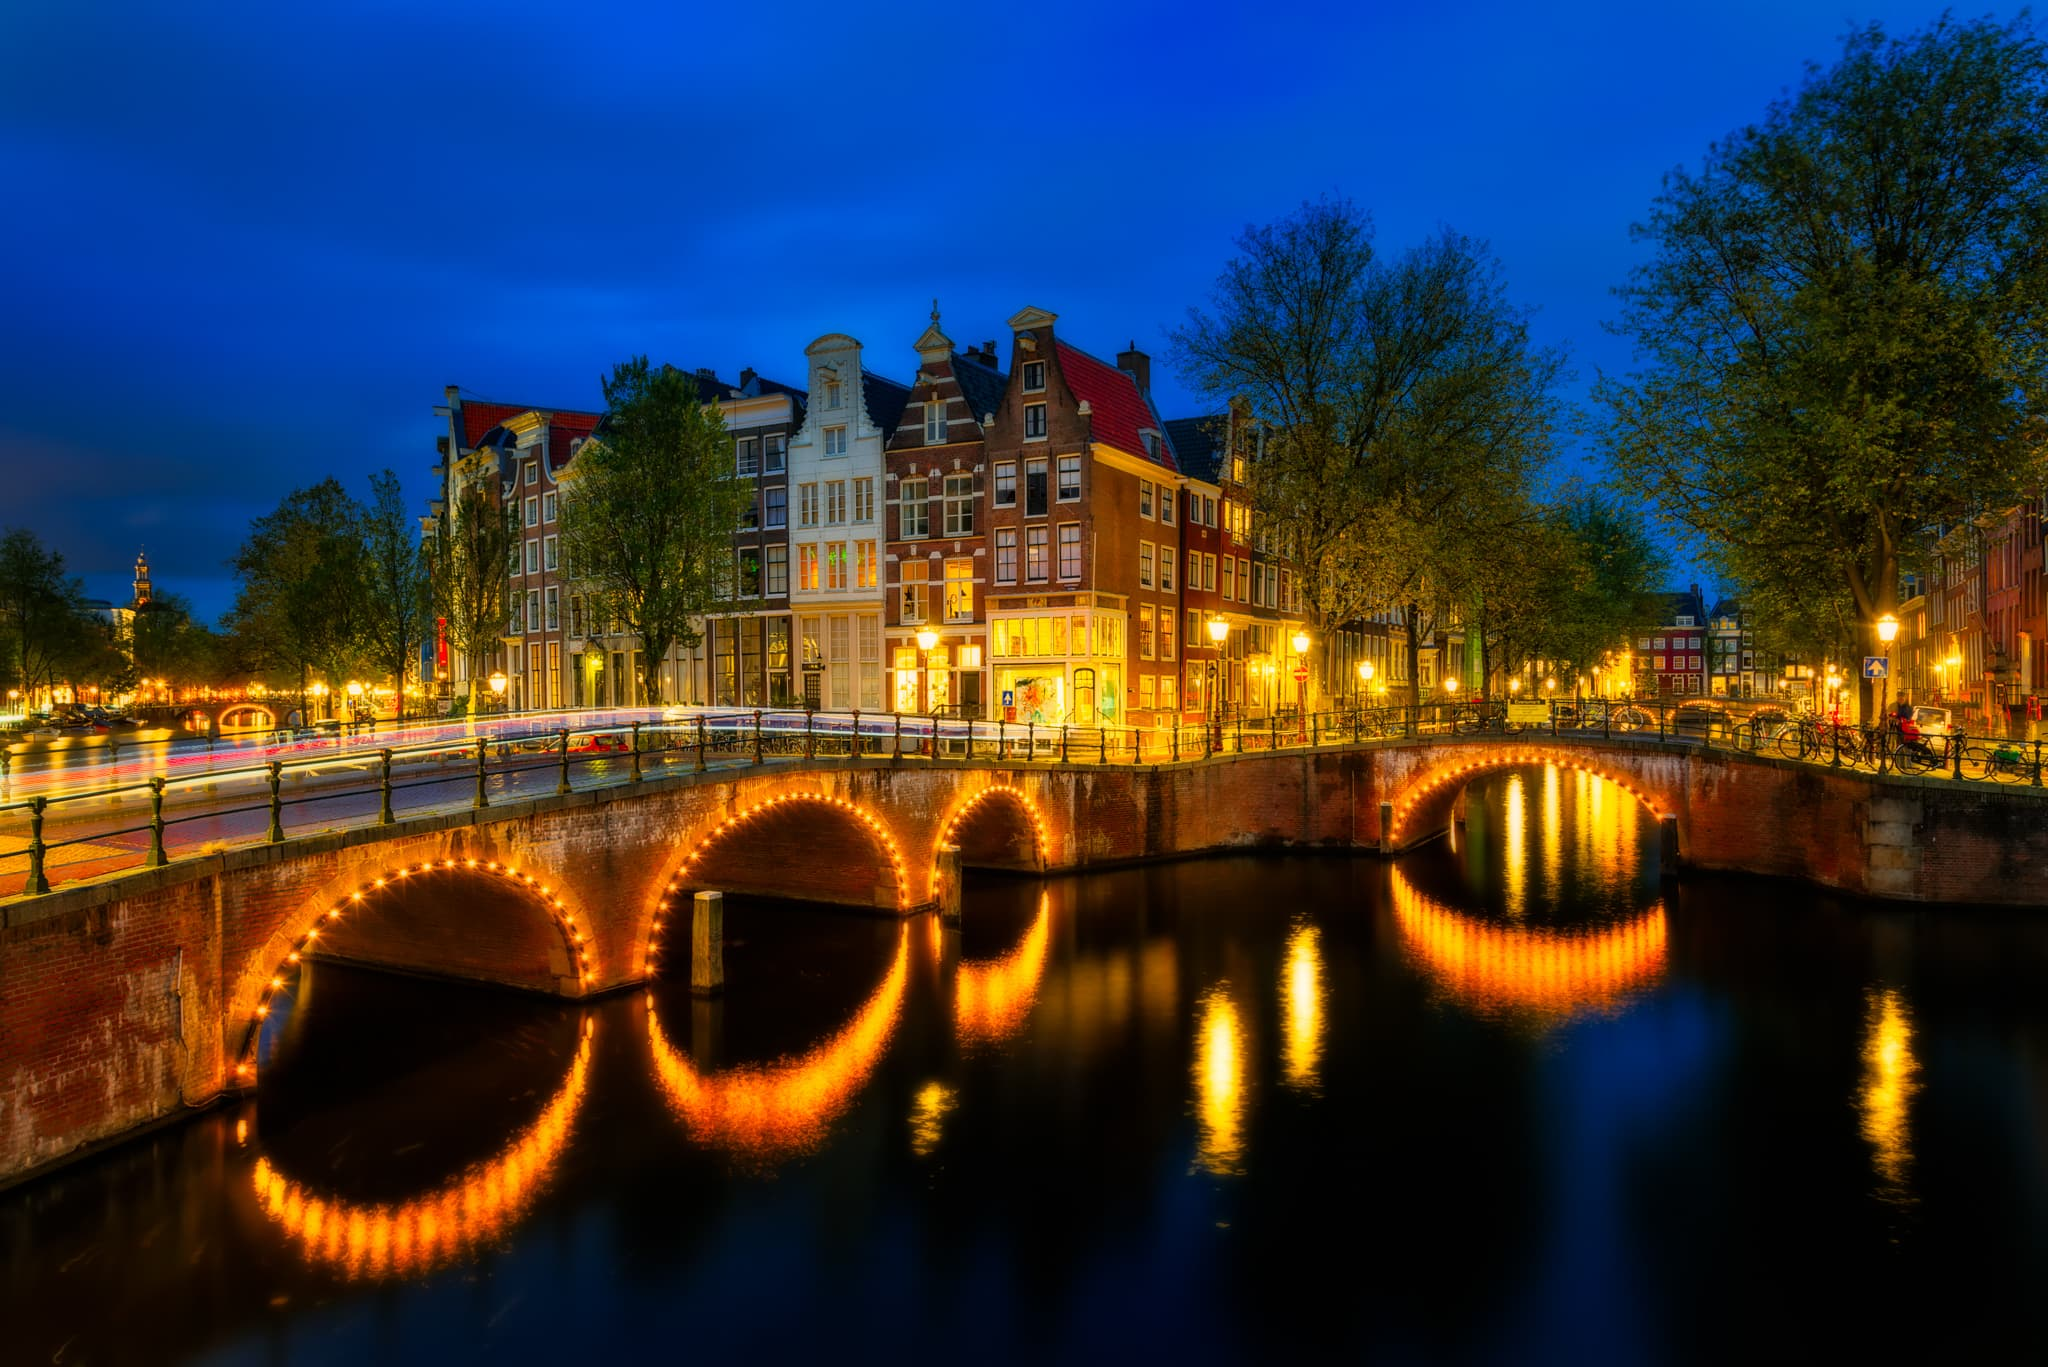 Amsterdam Keizersgracht under a bridge during the blue hour, The Netherlands.